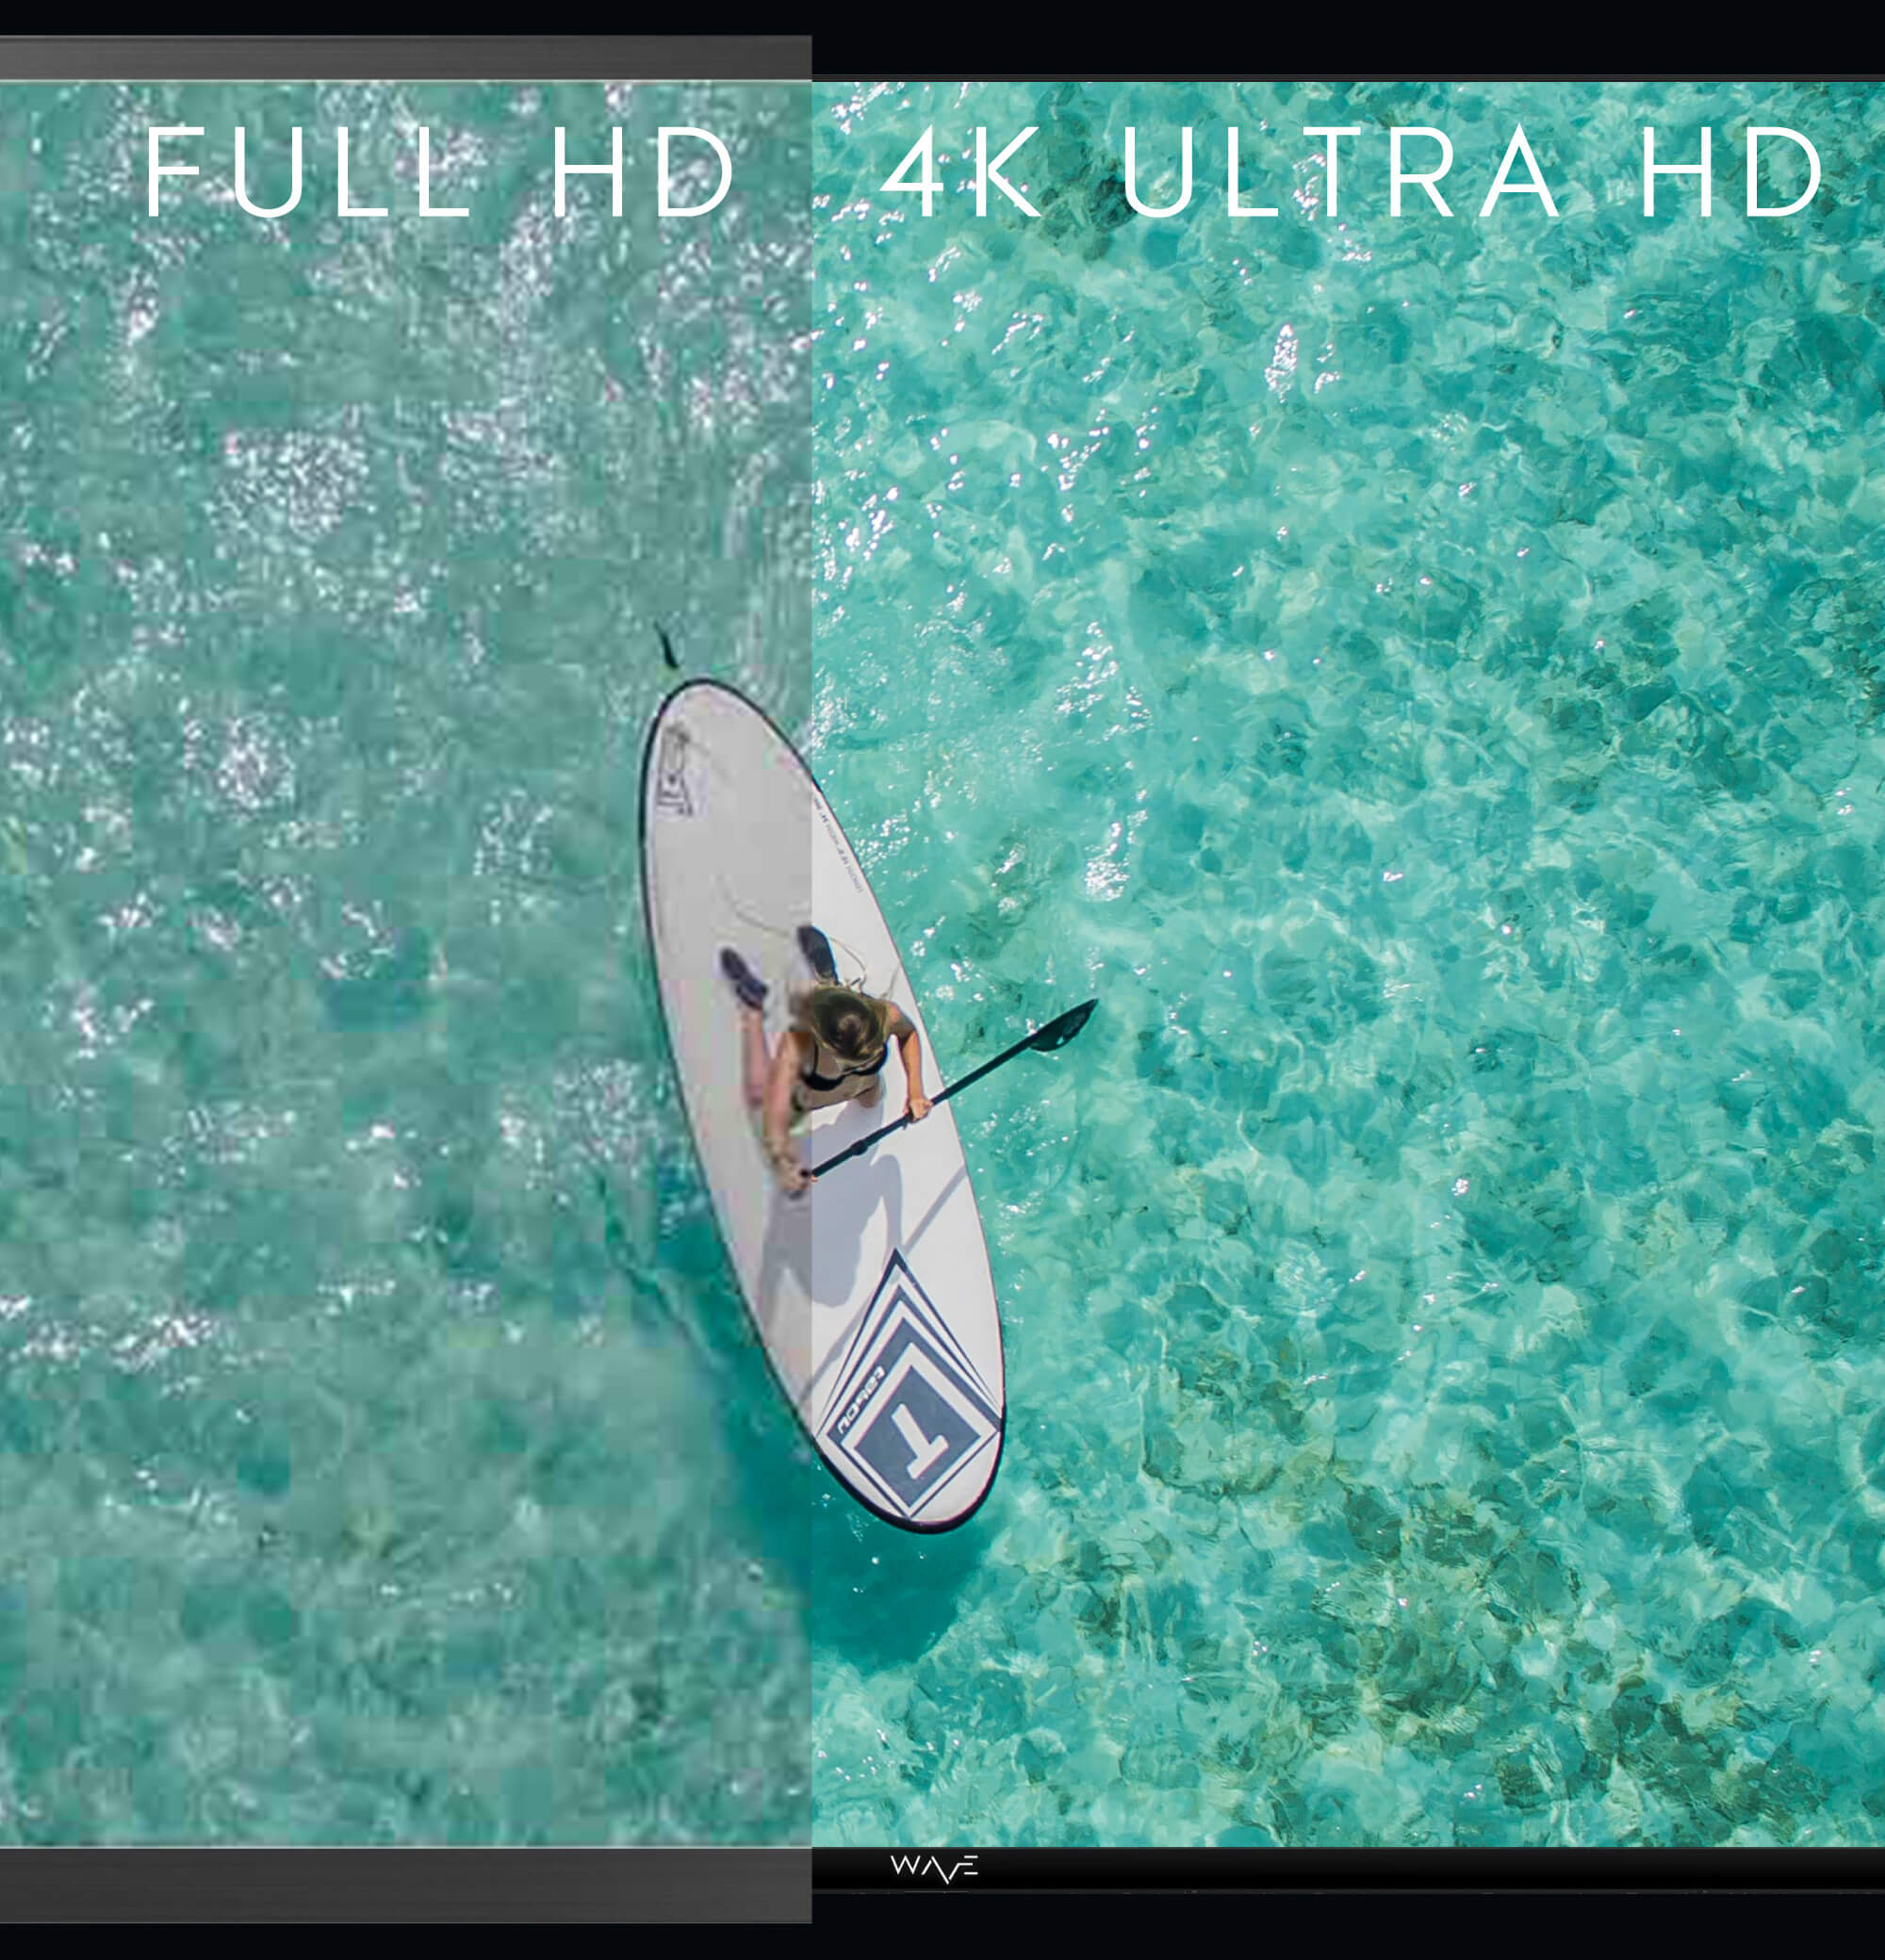 Ultra HD offers four times the pixel resolution of Full HD